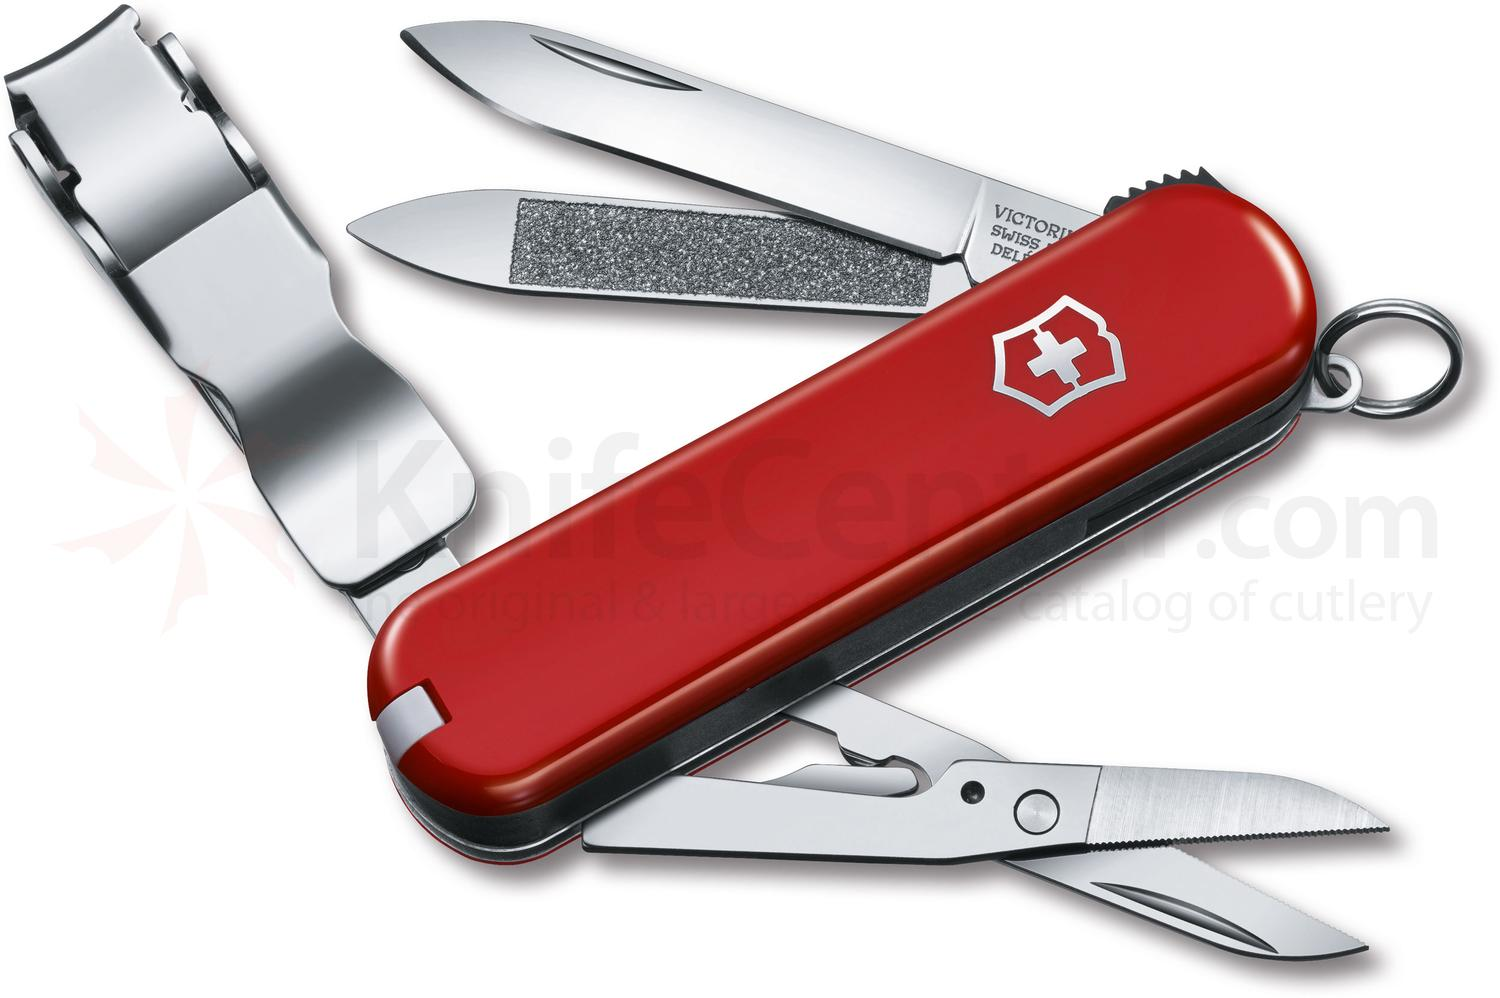 Victorinox Swiss Army Nail Clip 580 Multi-Tool 2-1/2 inch Red Handles (0.6463.US2)